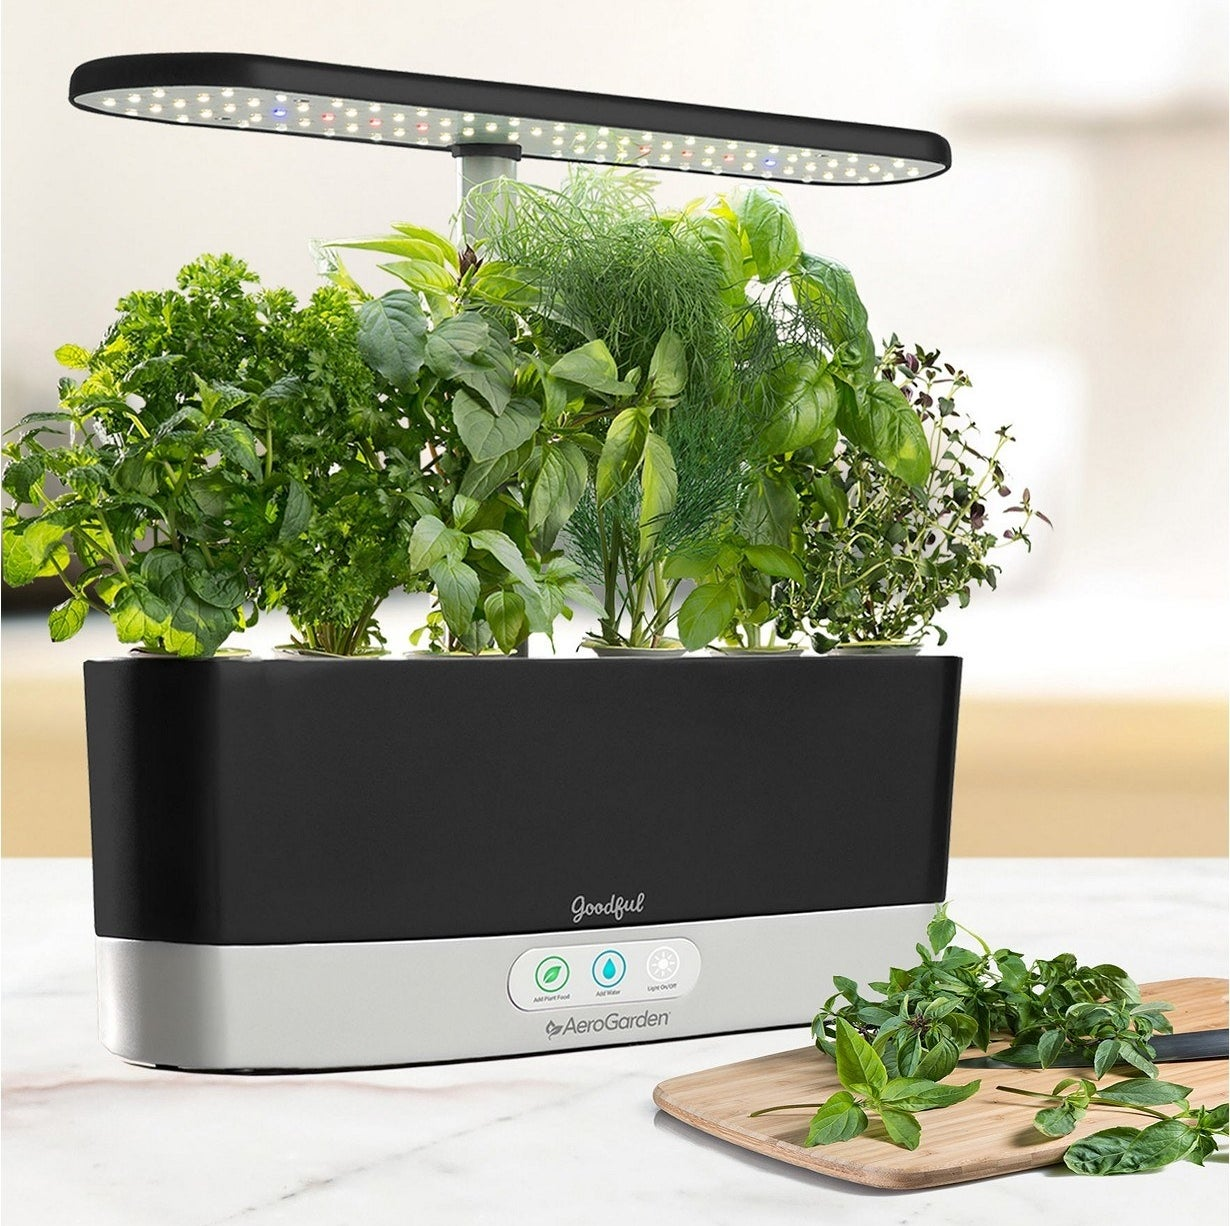 It comes with Miracle-Gro plant food and seeds to grow mint, thyme, curly parsley, dill, Genovese basil, and Thai basil.Check out BuzzFeed's full review of this garden!Get it from BuzzFeed's Goodful line, exclusively at Macy's for $129.99 (originally $189.99, available in three colors).